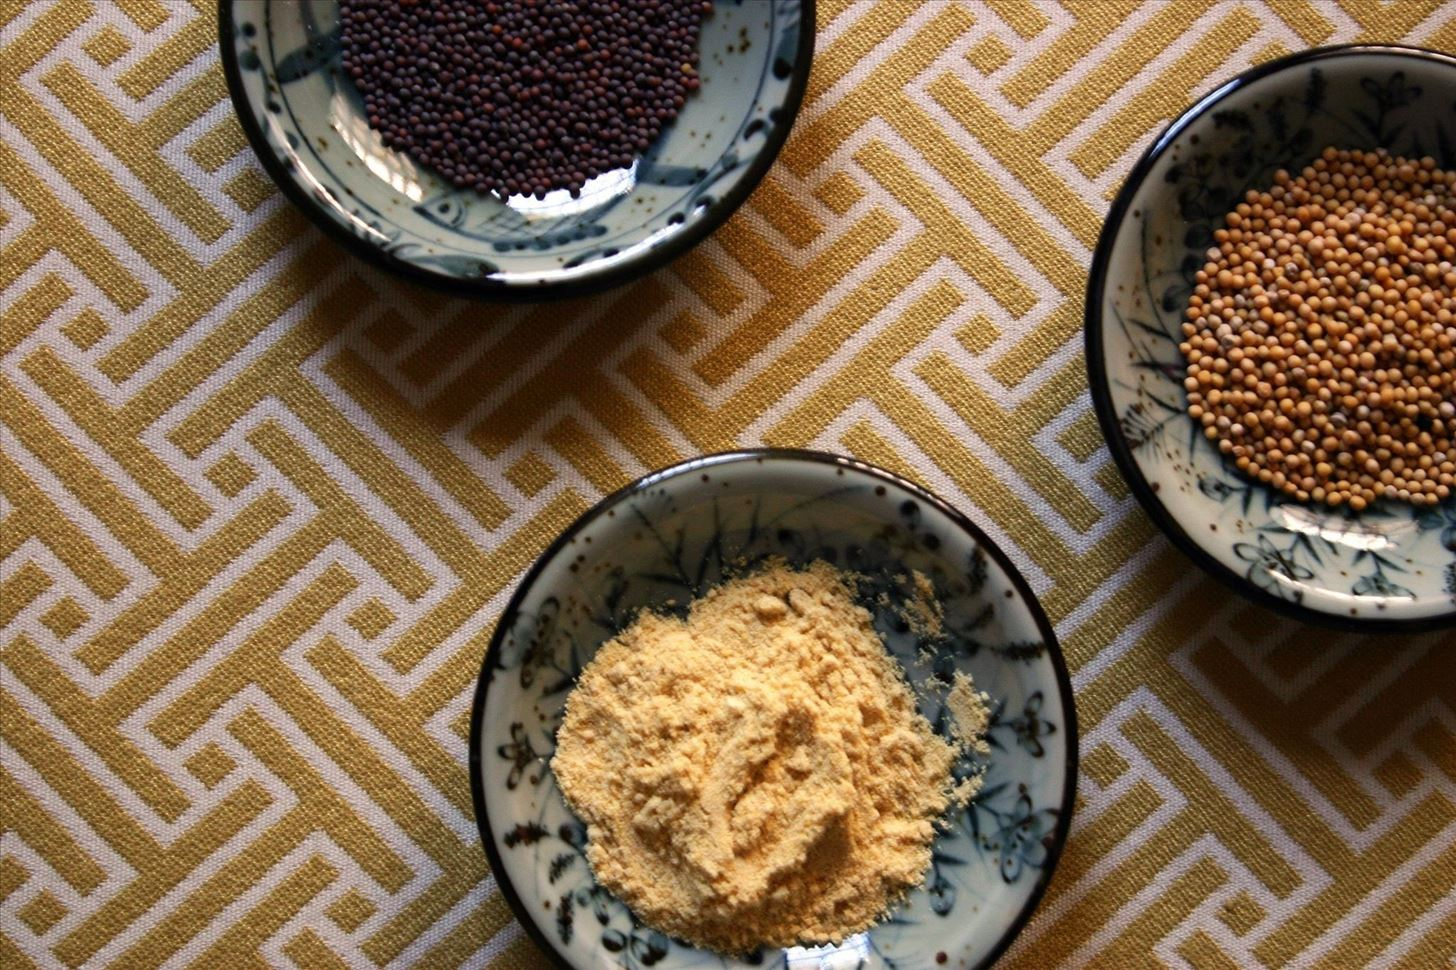 How to Make Your Own Dijon Mustard (Or Any Other Mustard Variety)